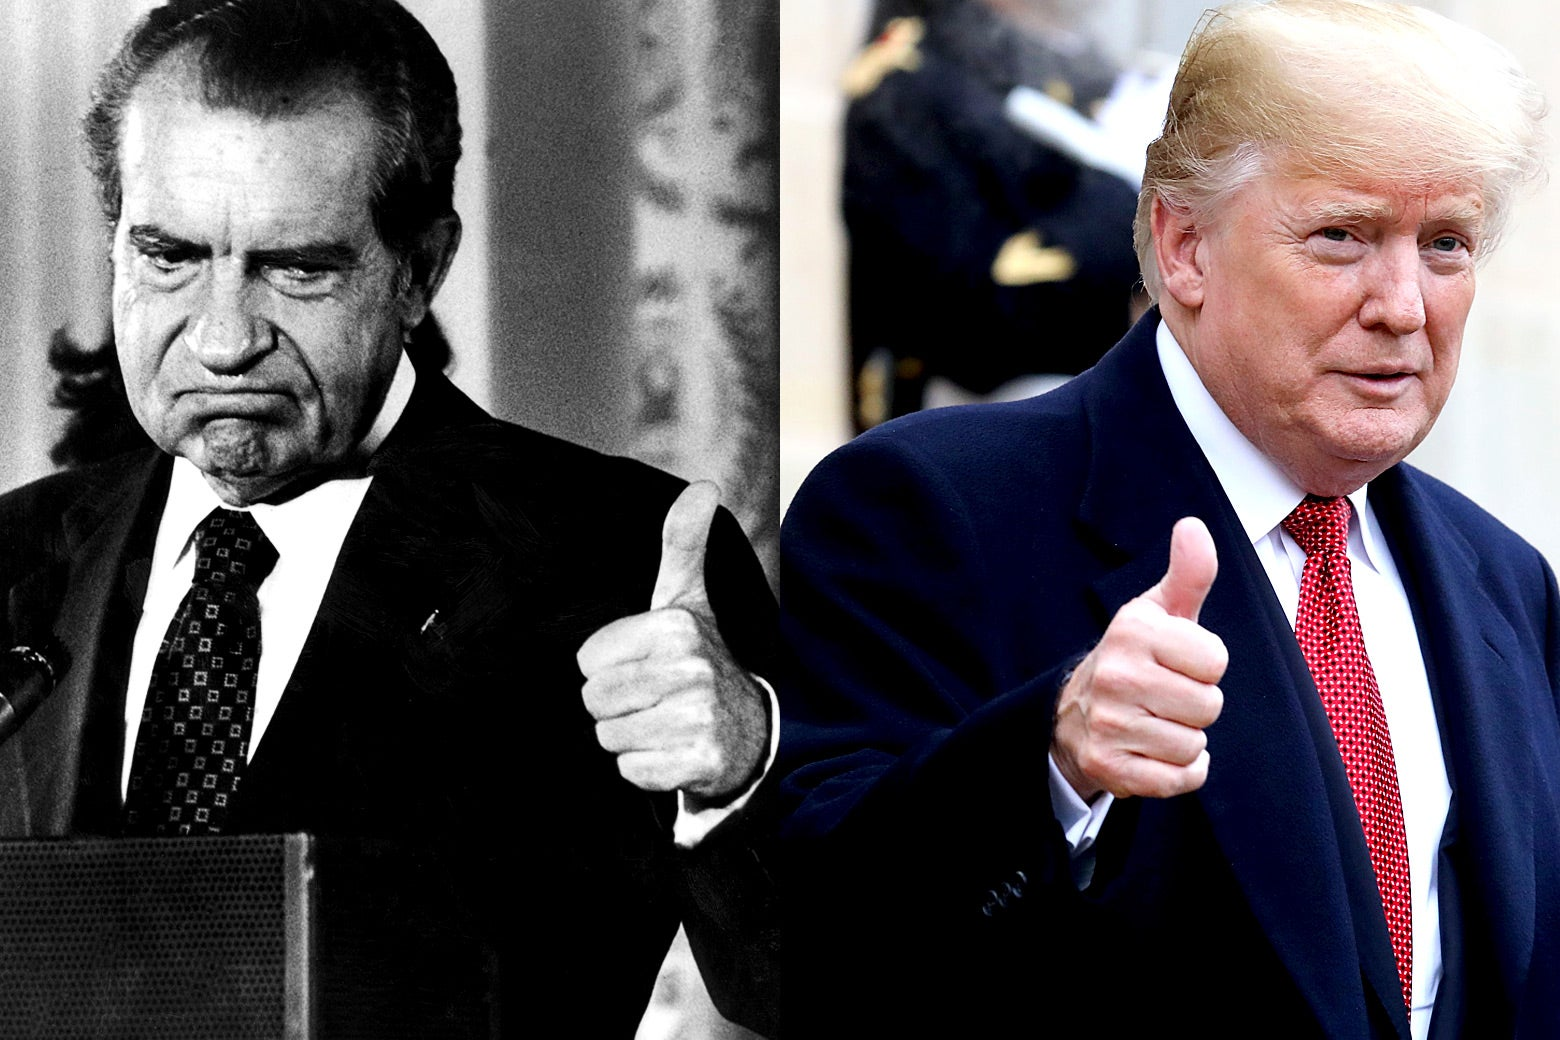 Photo illustration side-by-side of Richard Nixon and Donald Trump.